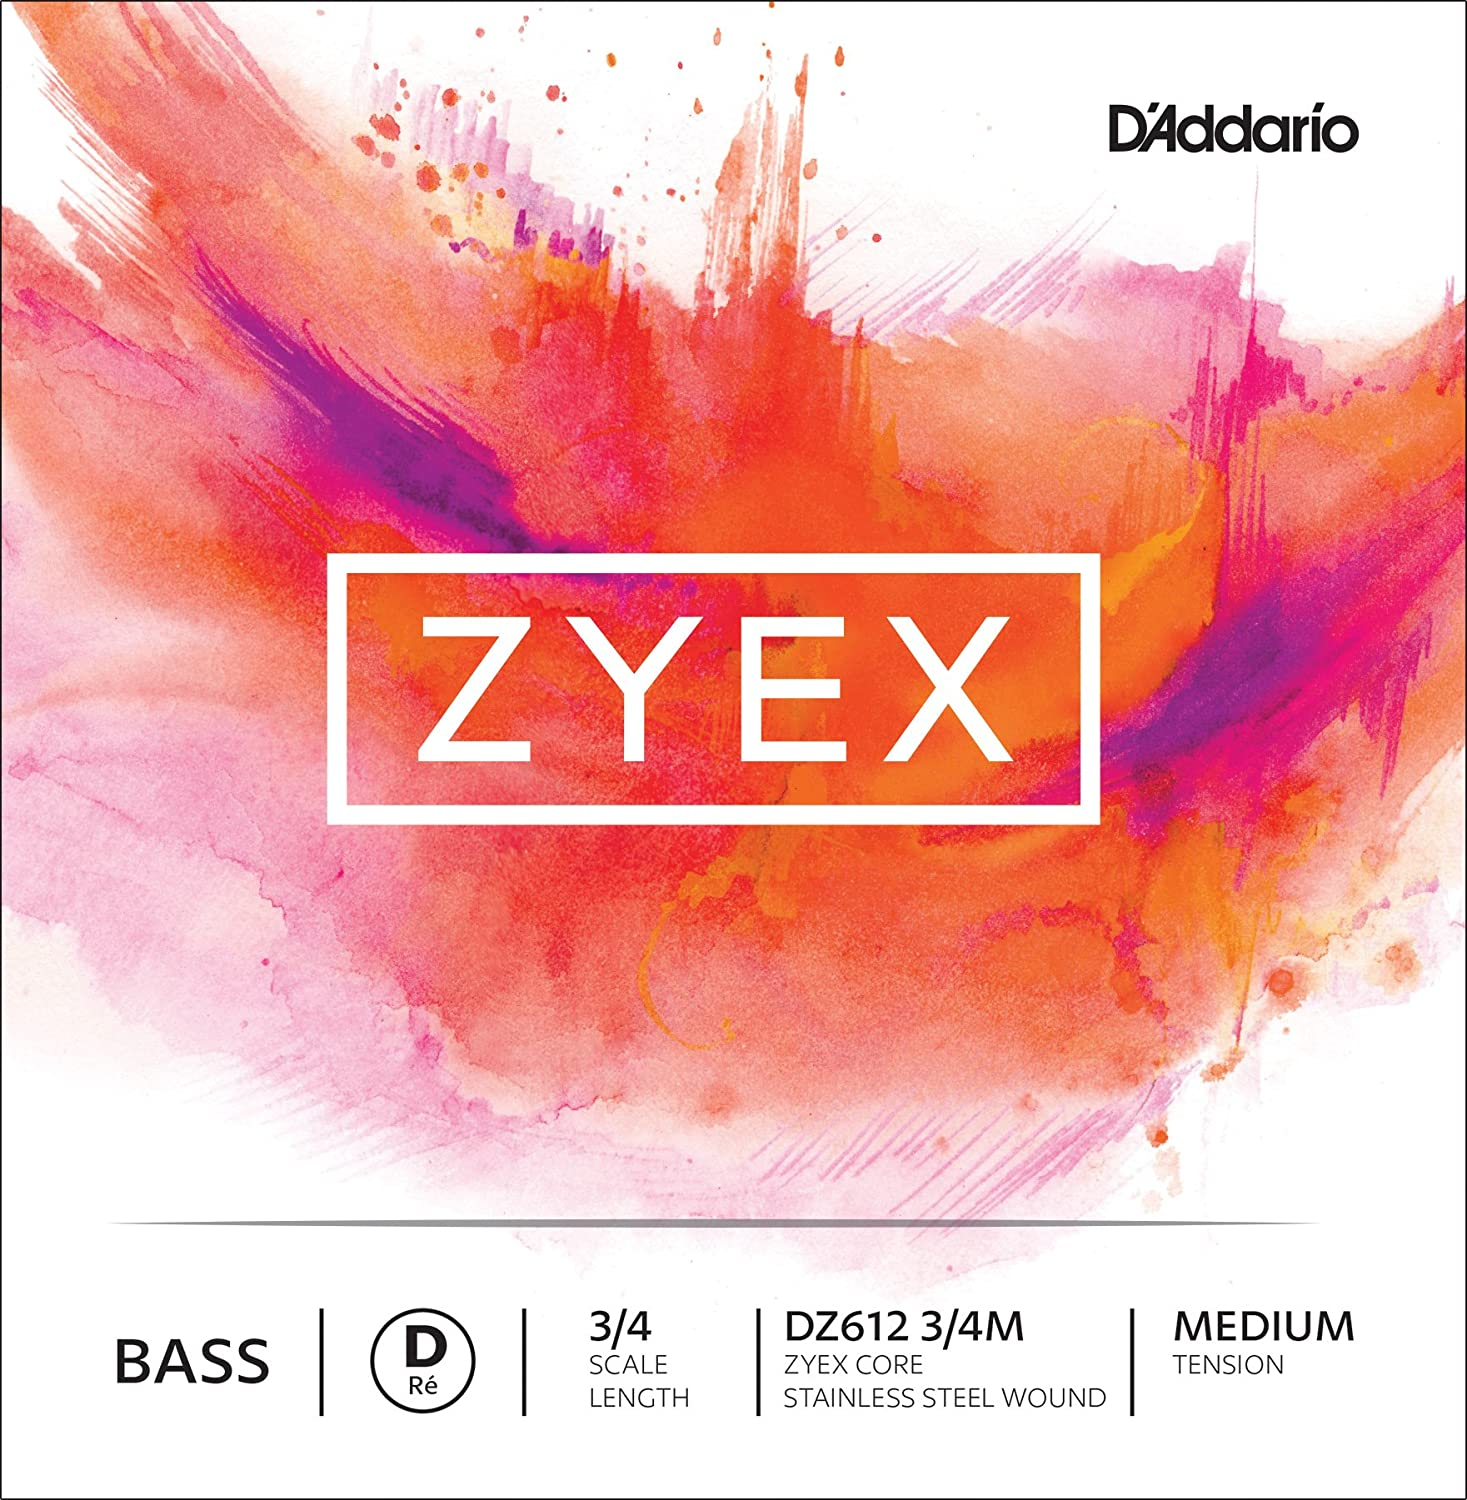 D'Addario Zyex Bass Single G String, 3/4 Scale, Light Tension D' Addario DZ611 3/4L